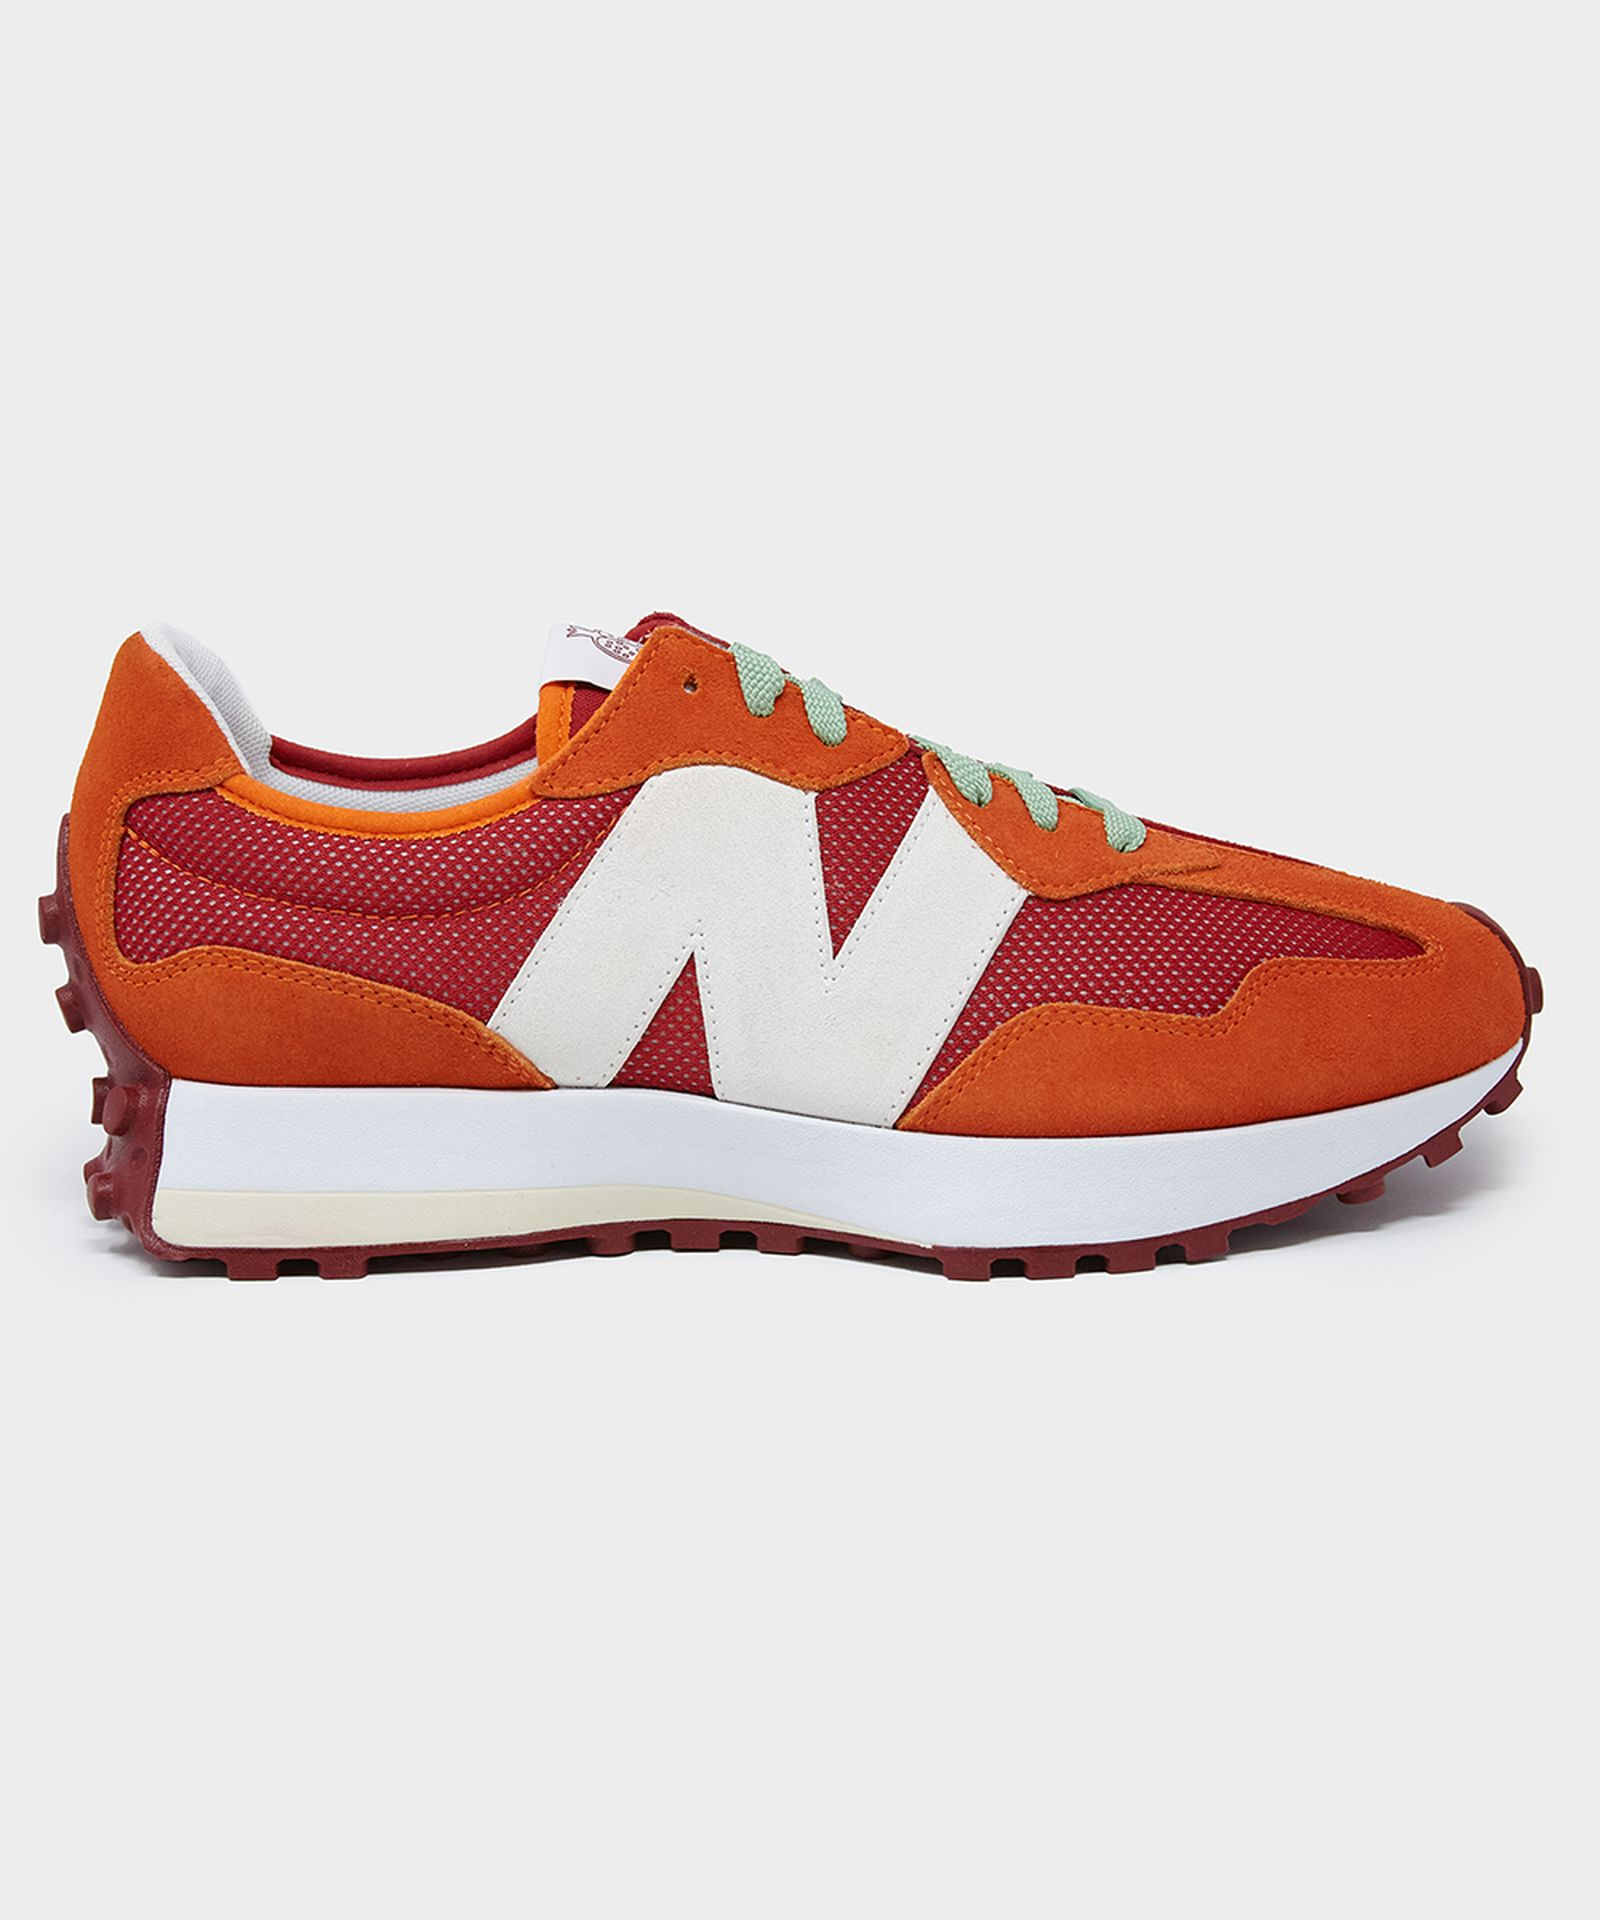 todd-snyder-new-balance-327-farmers-market-release-date-price-1-01